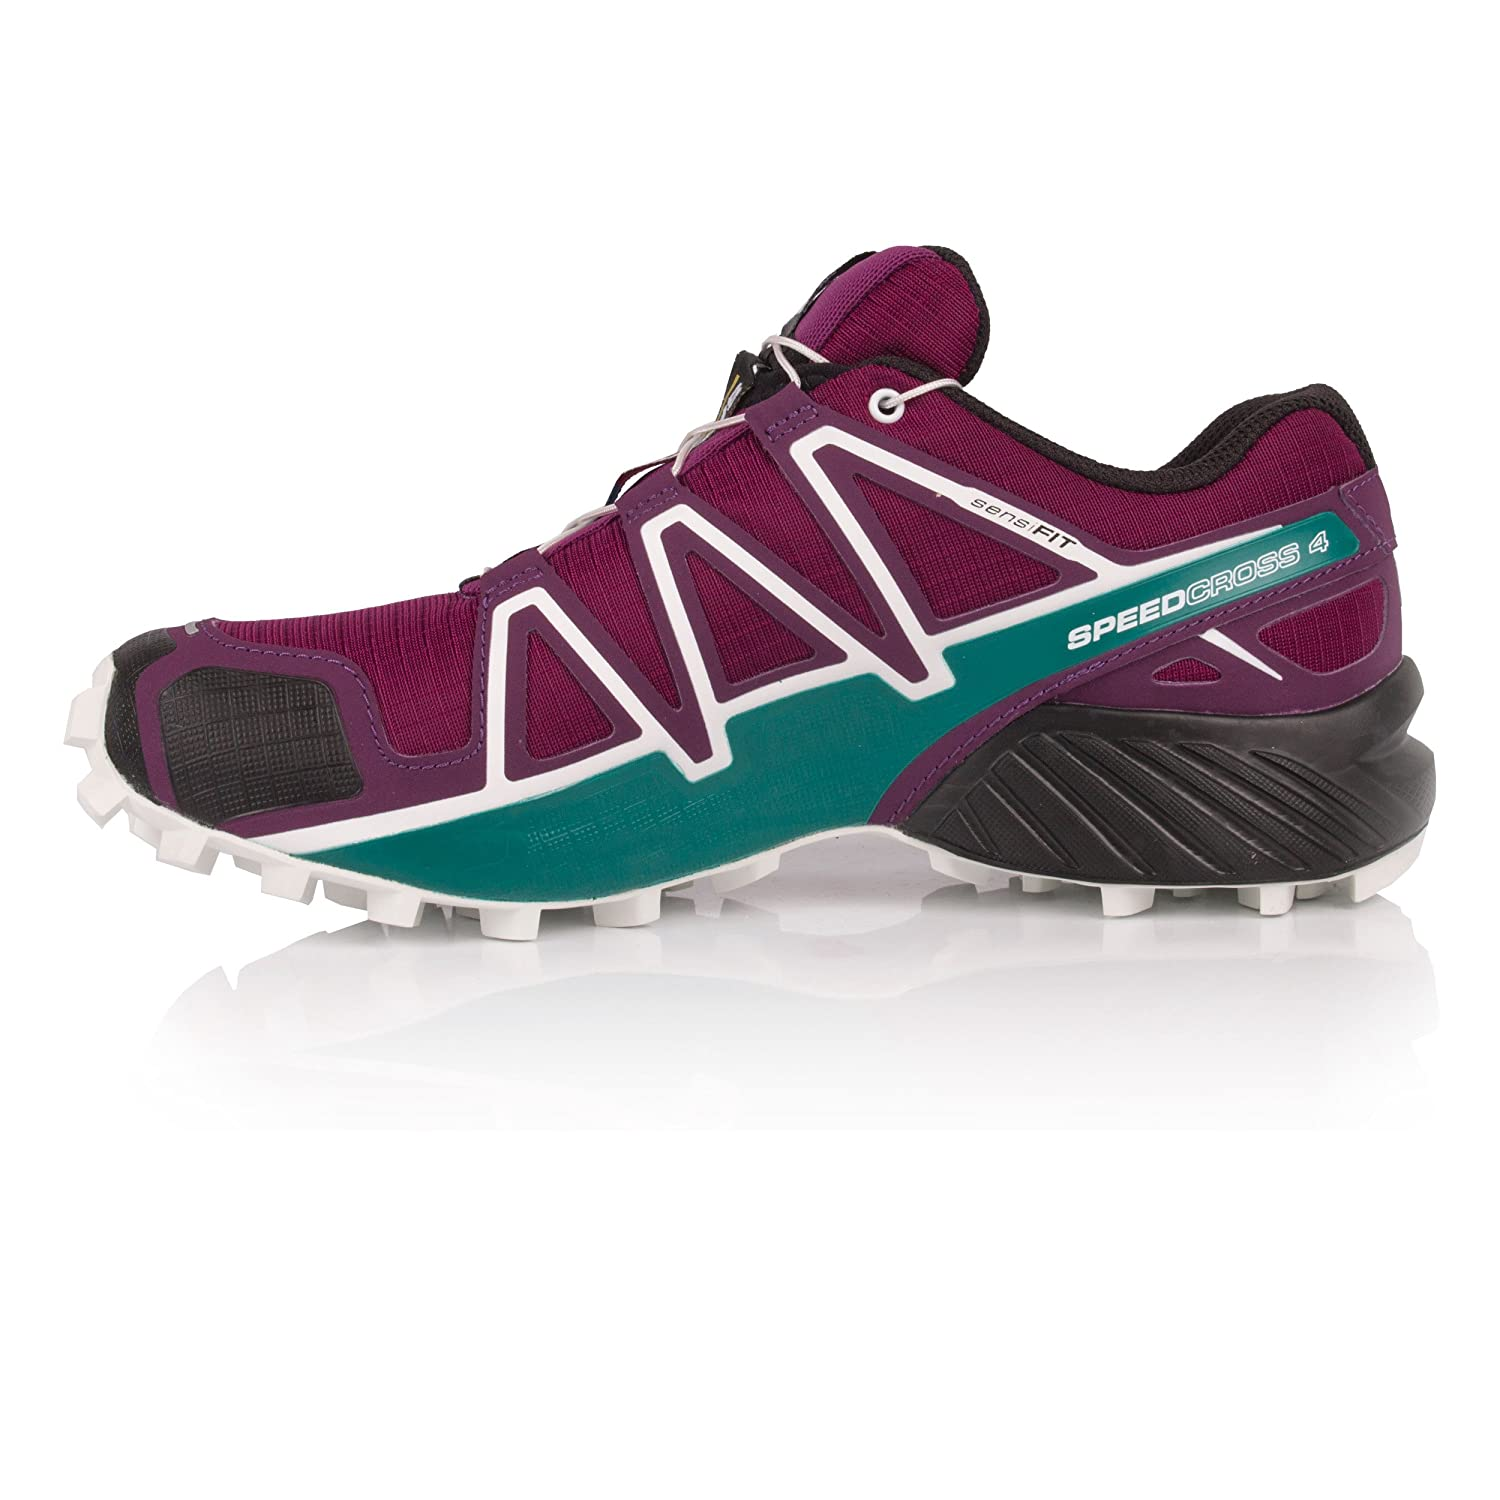 Salomon Women's Speedcross 4 W Trail Runner B077BCNX88 8.5 B(M) US|Dark Purple/White/Deep Lake